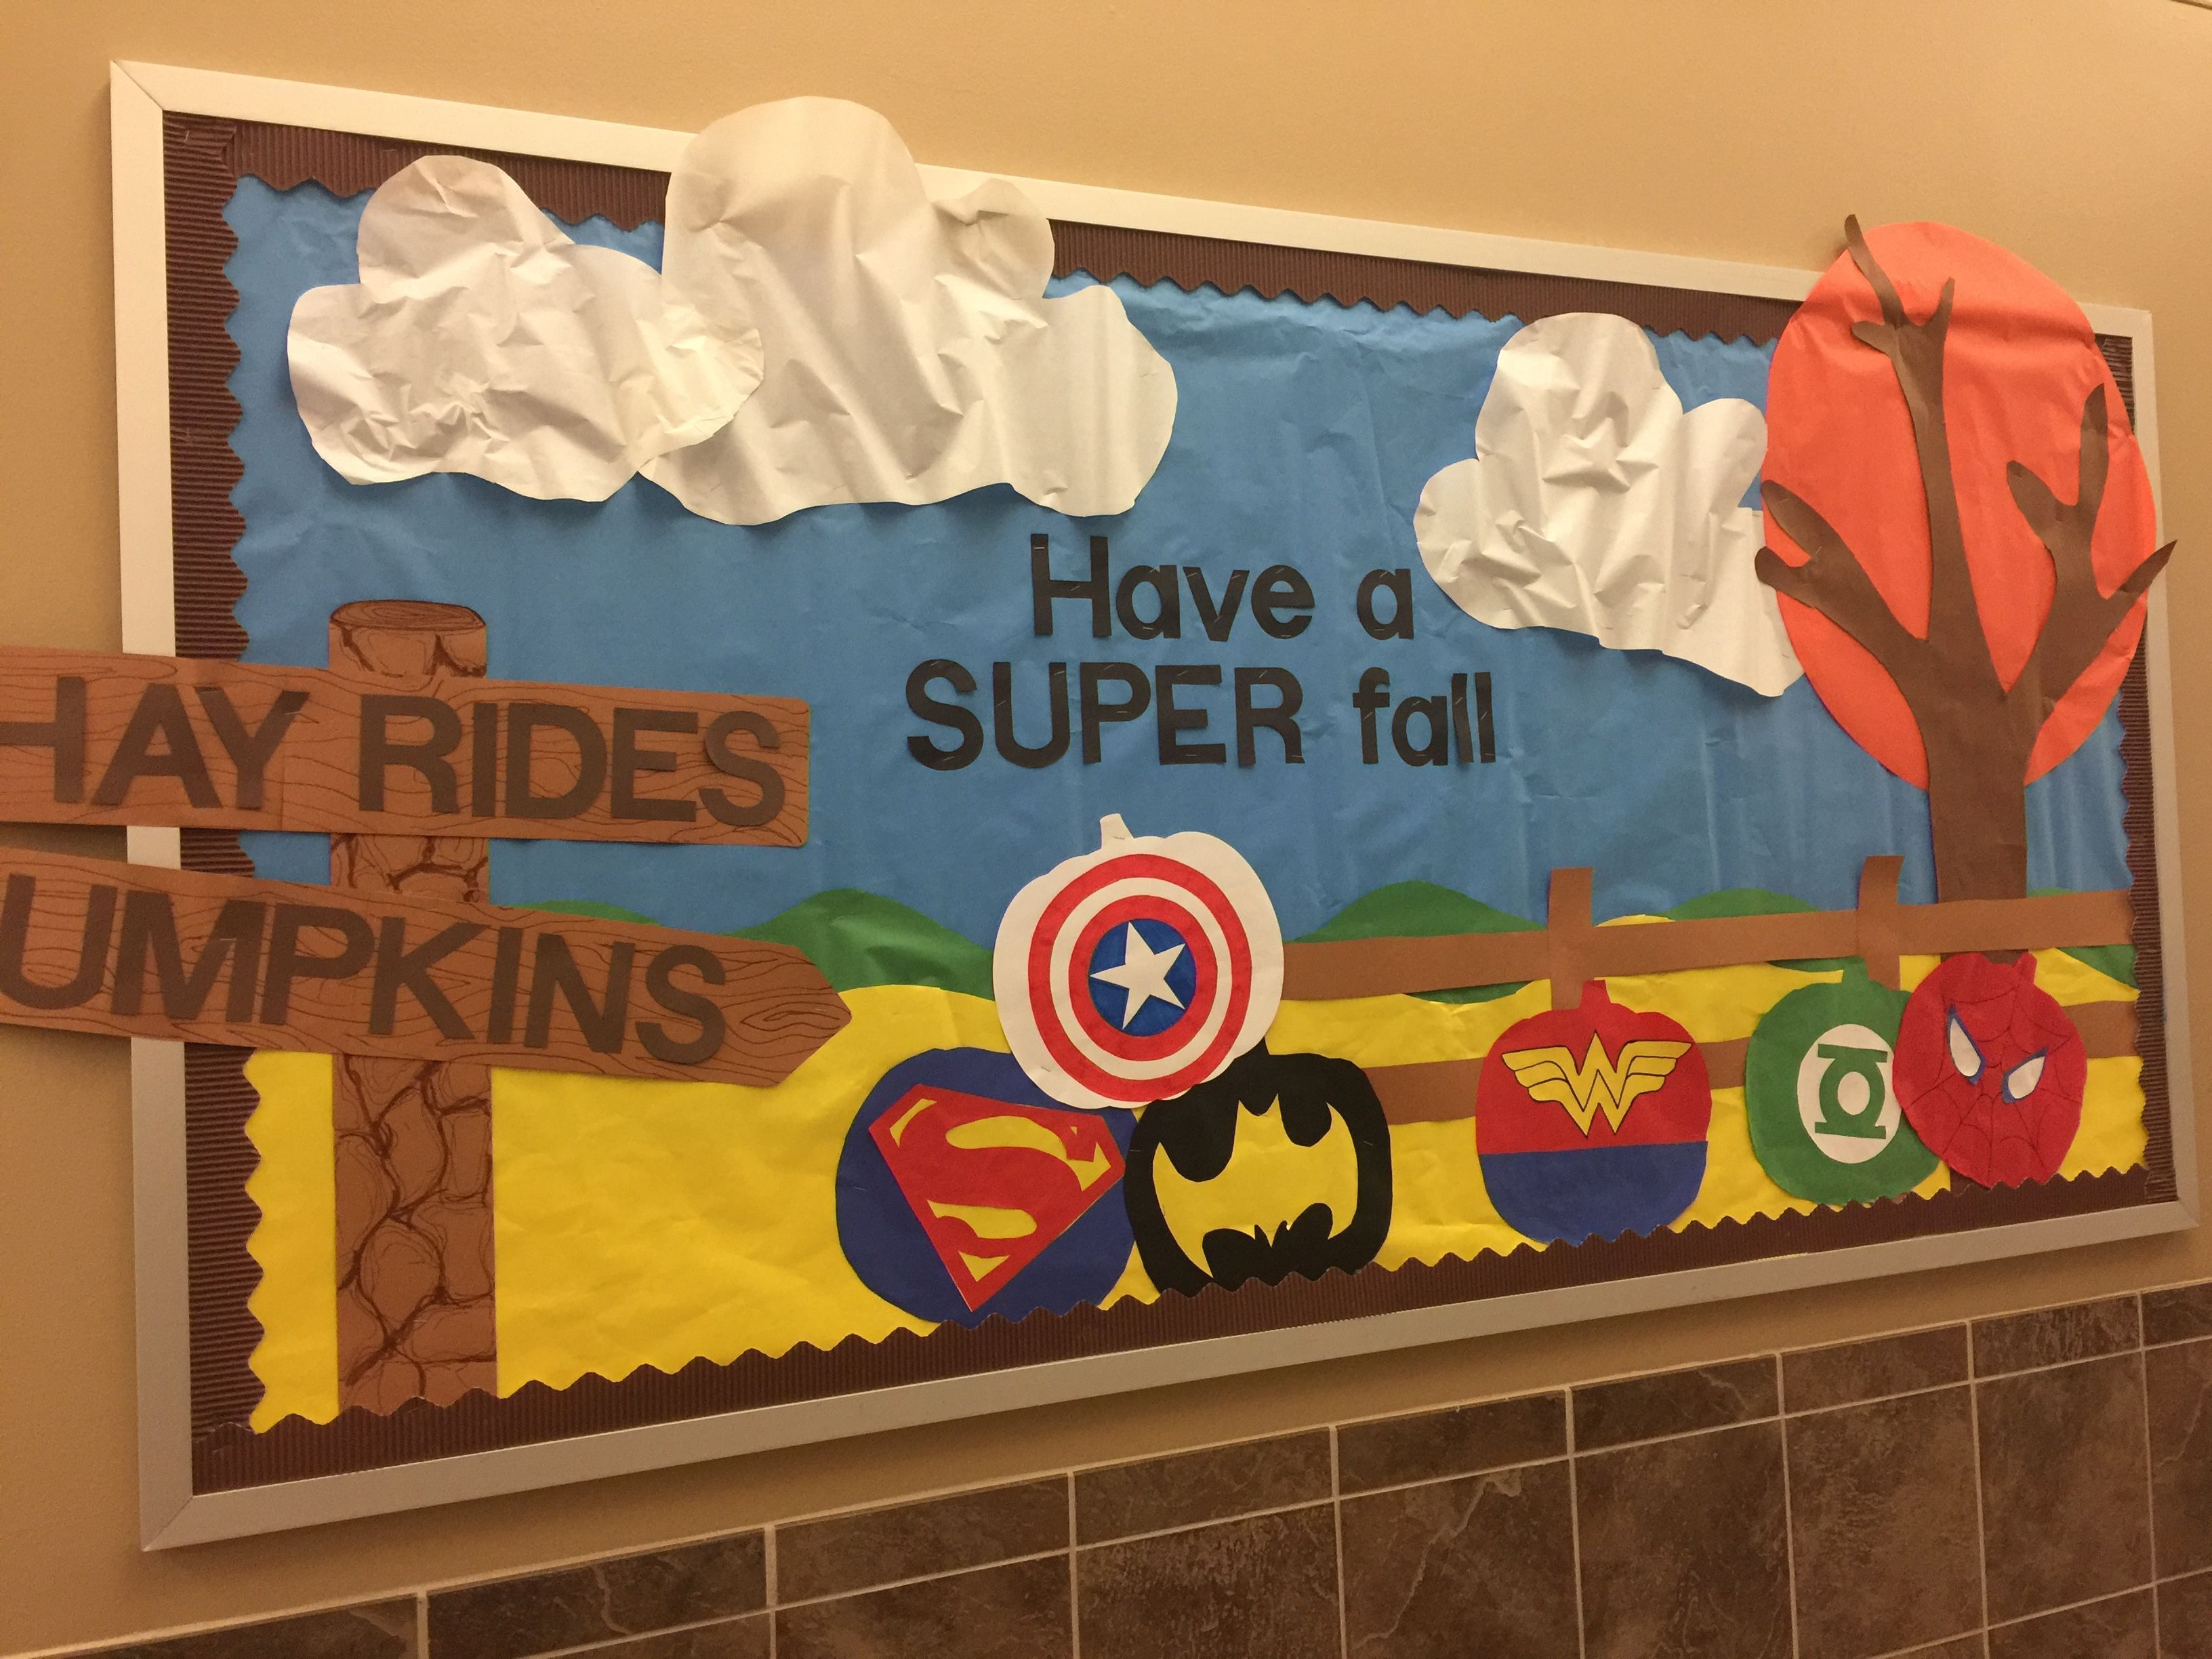 Fall Superhero Bulletin Board #falldoordecorationsclassroom Fall Superhero Bulletin Board #halloweenbulletinboards Fall Superhero Bulletin Board #falldoordecorationsclassroom Fall Superhero Bulletin Board #octoberbulletinboards Fall Superhero Bulletin Board #falldoordecorationsclassroom Fall Superhero Bulletin Board #halloweenbulletinboards Fall Superhero Bulletin Board #falldoordecorationsclassroom Fall Superhero Bulletin Board #halloweenbulletinboards